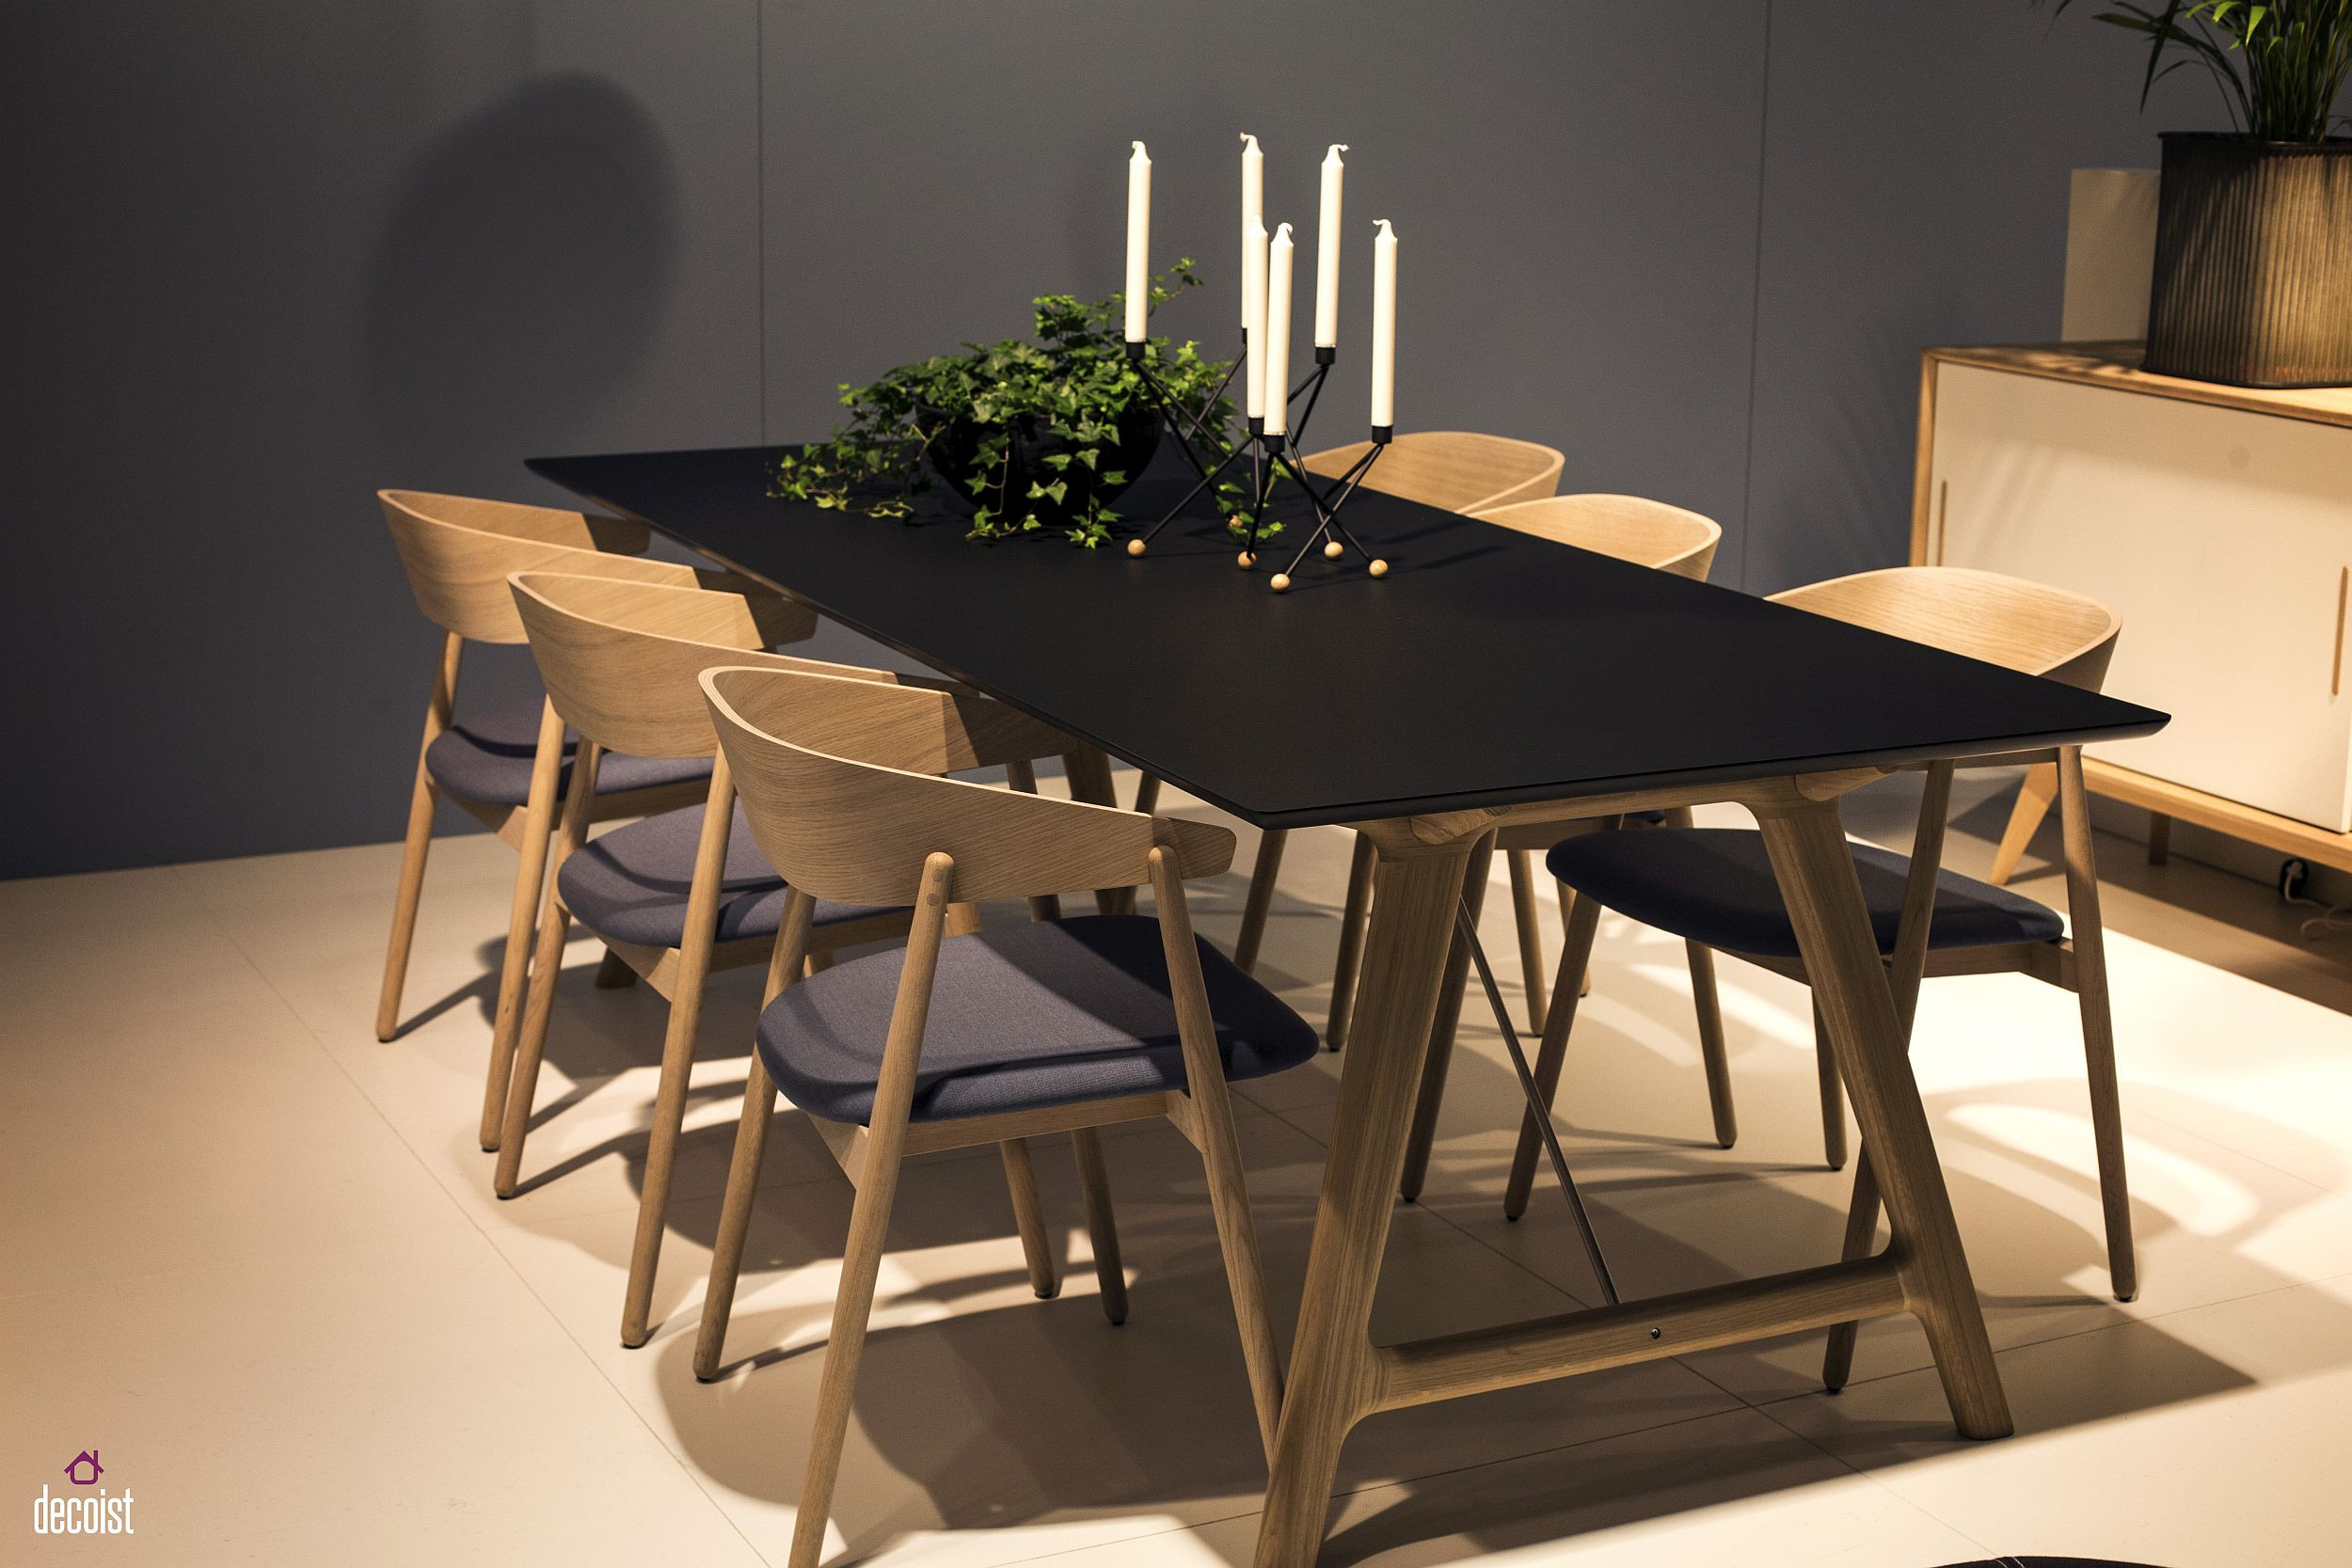 Best ideas about Wood Dining Table . Save or Pin A Natural Upgrade 25 Wooden Tables to Brighten Your Now.